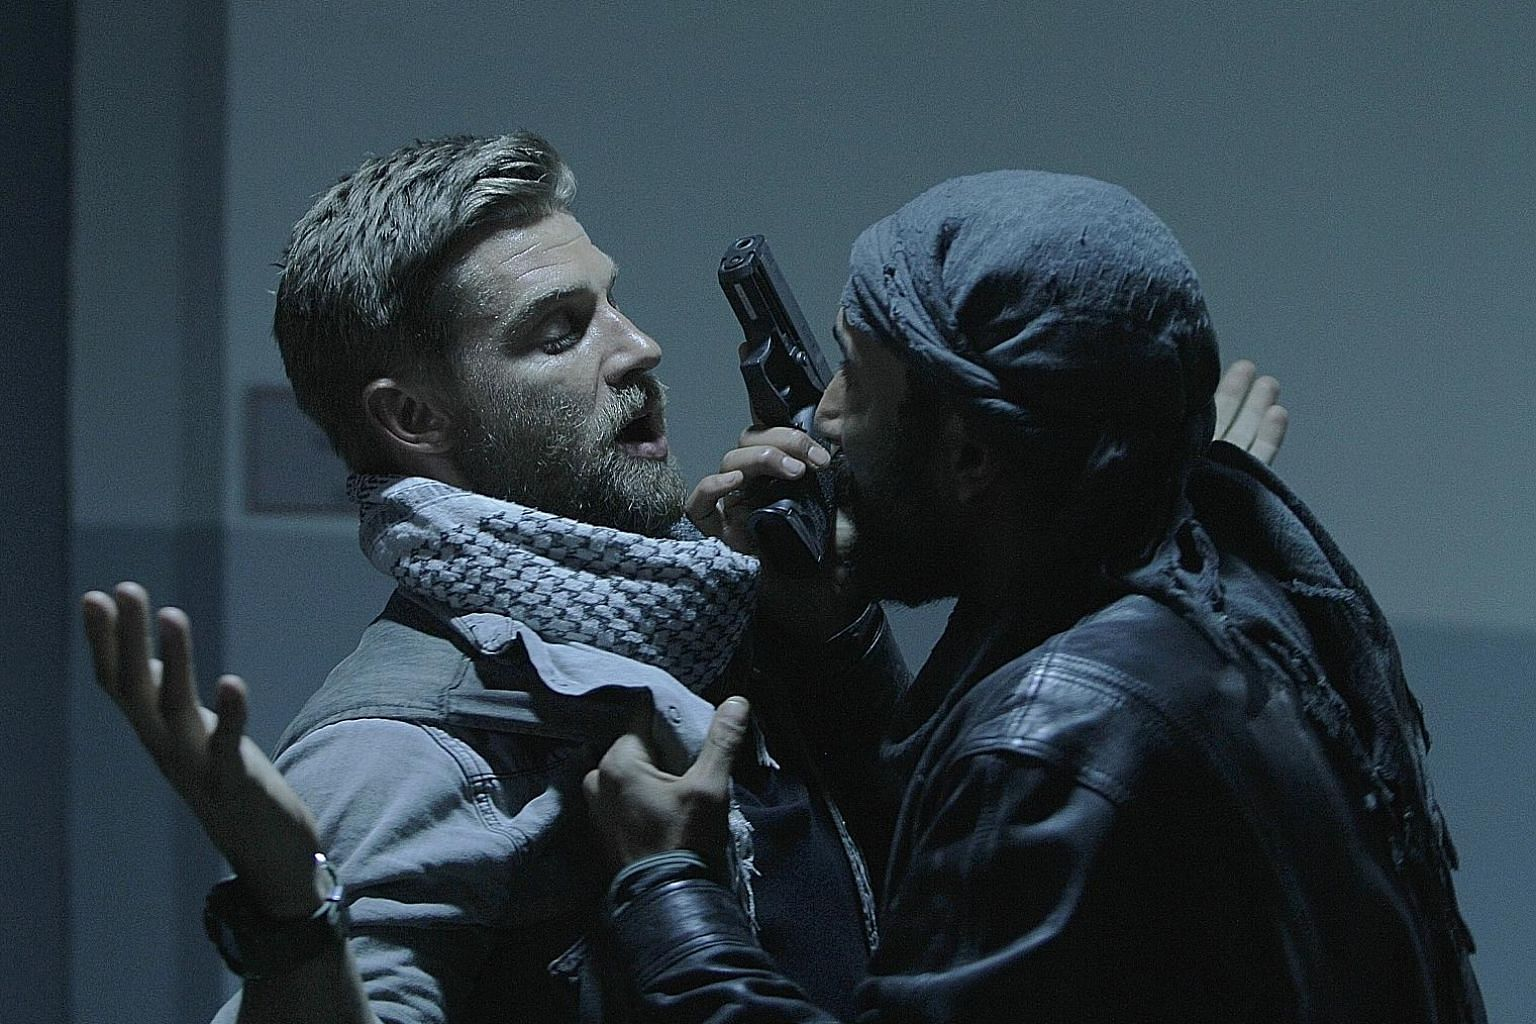 Mike Vogel (far left) stars as an officer leading a team on a mission to rescue a kidnapped eye surgeon in The Brave.